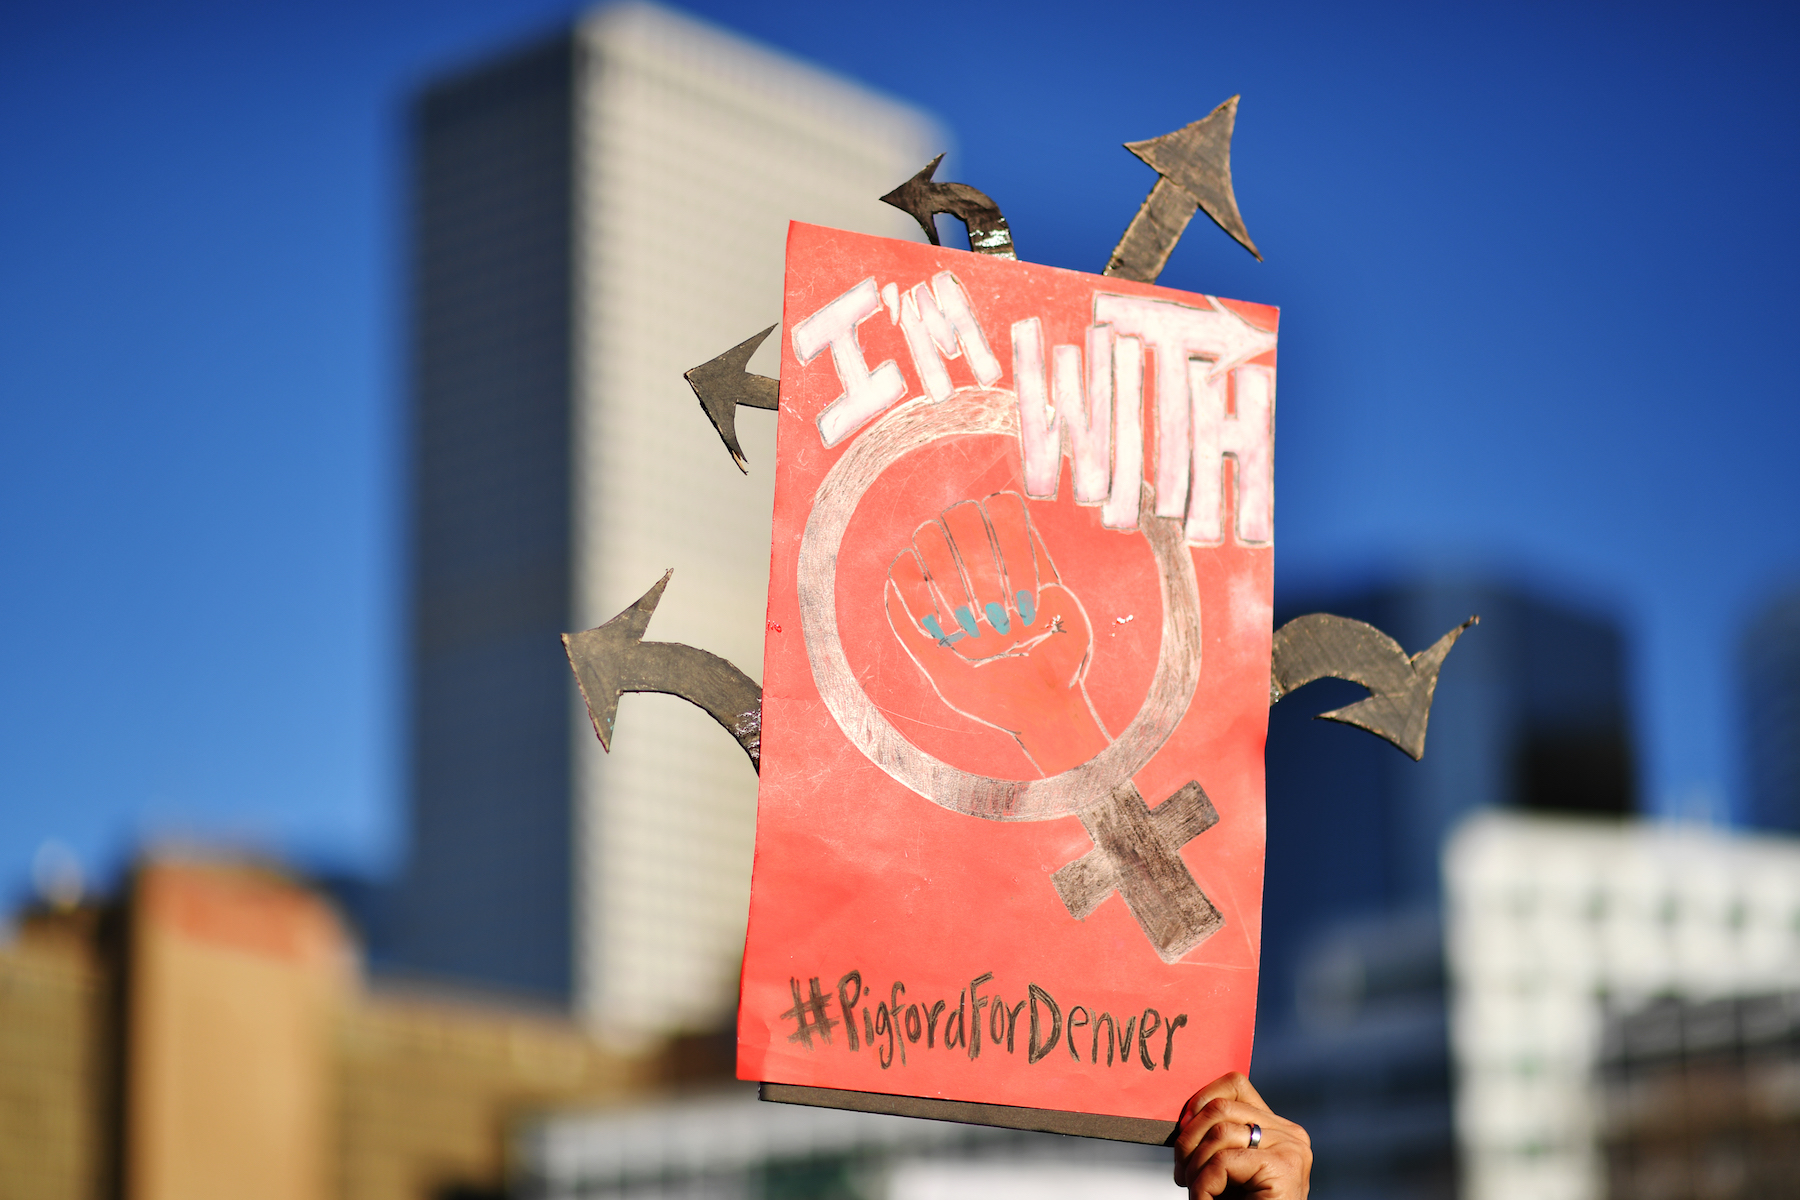 "<div class=""meta image-caption""><div class=""origin-logo origin-image kabc""><span>kabc</span></div><span class=""caption-text"">Tony Pigford of Denver holds the sign during the Women's March on Denver at Civic Center Park in downtown Denver. January 19, 2019. (Hyoung Chang/Denver Post via Getty Images)</span></div>"